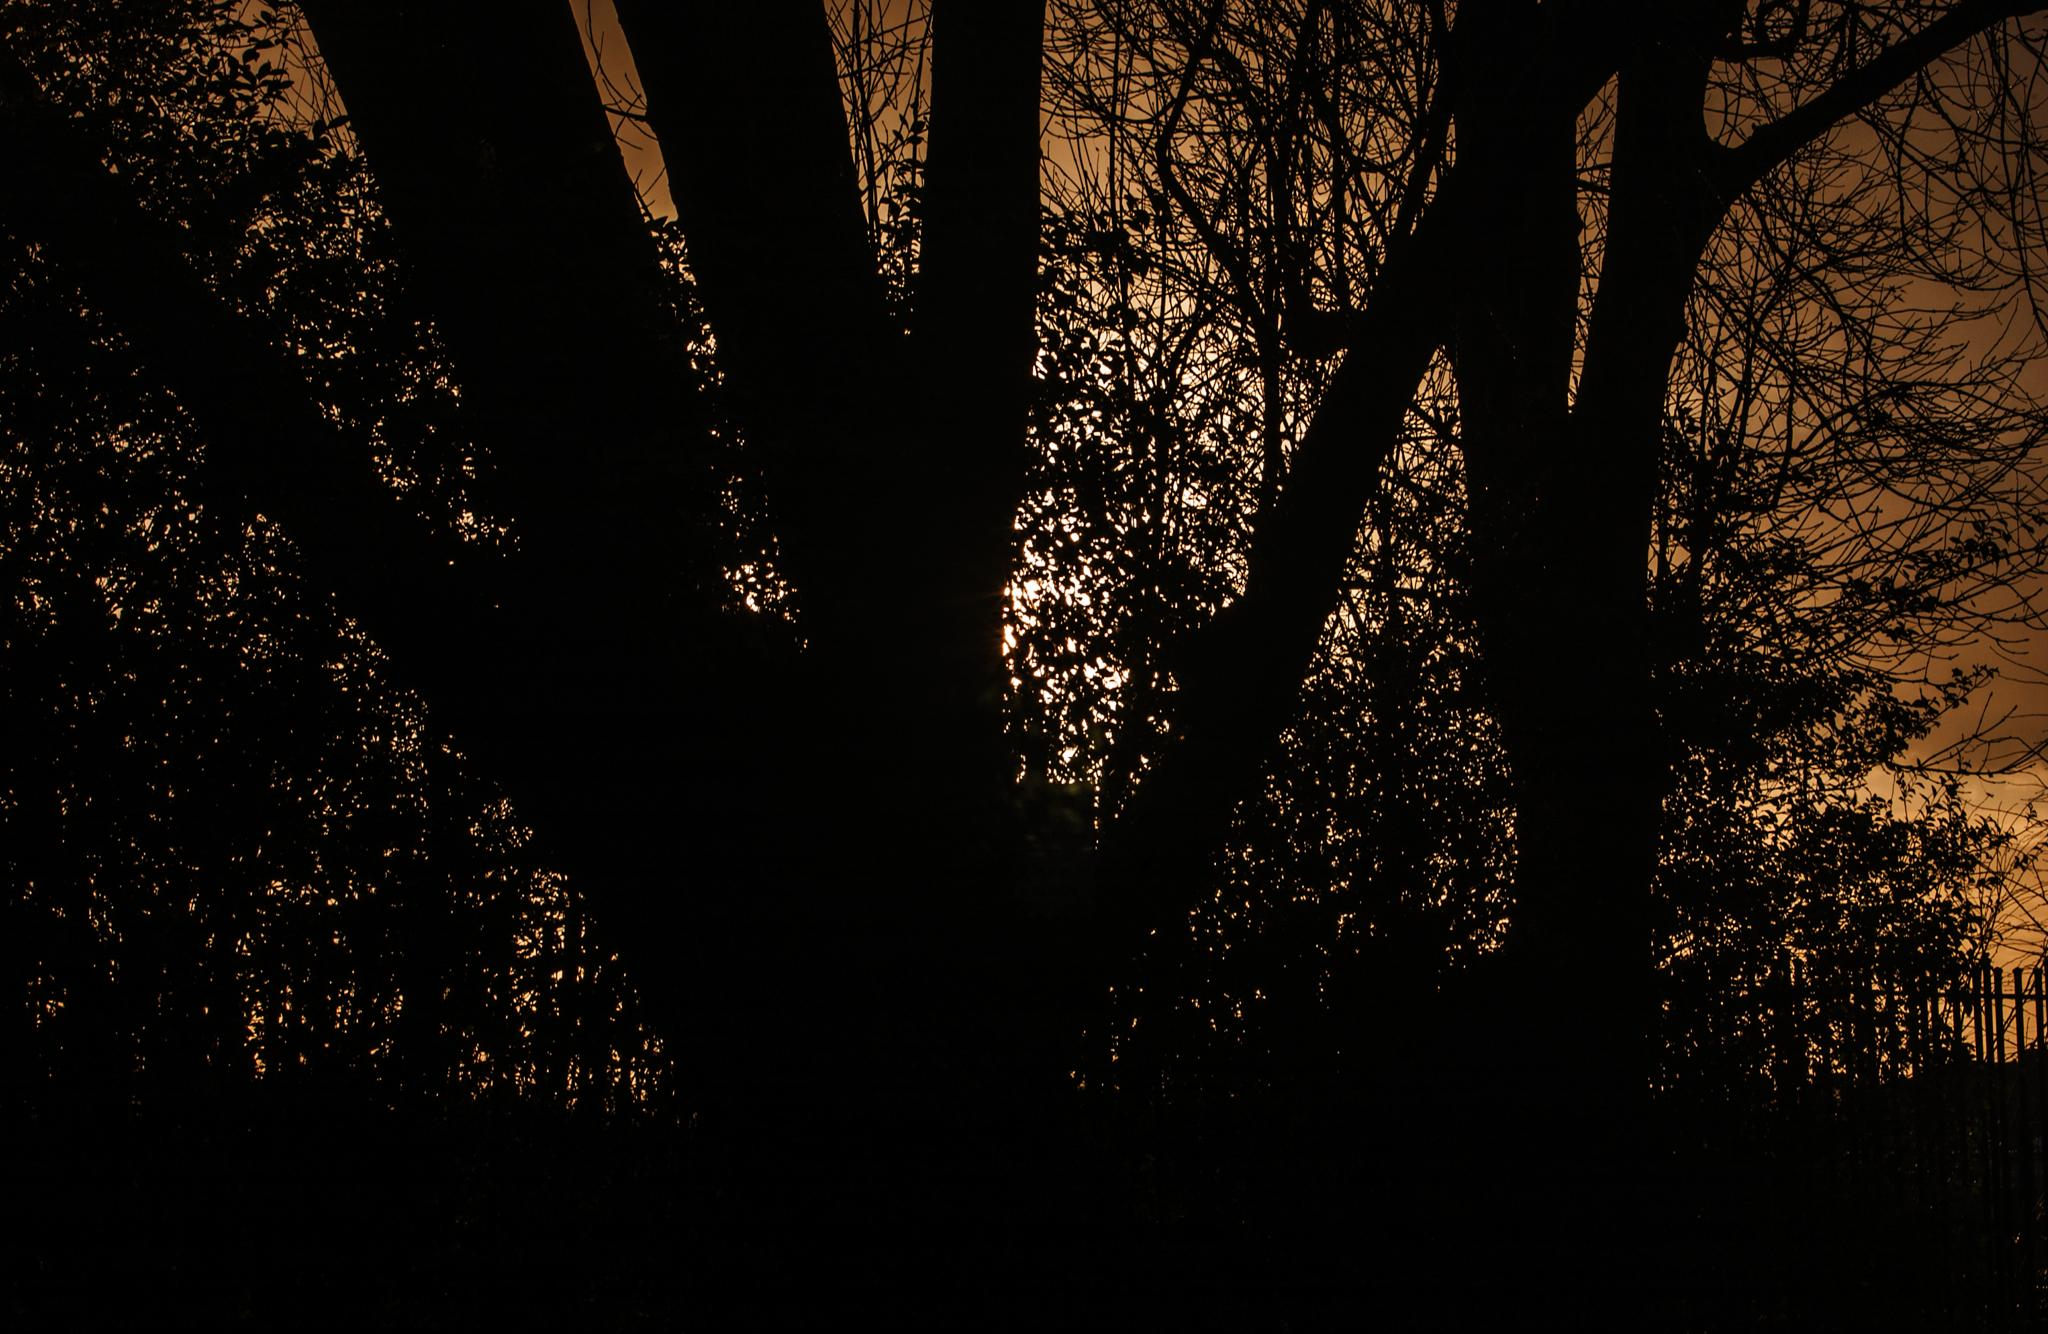 Sunset Through the trees by howard.rollinson